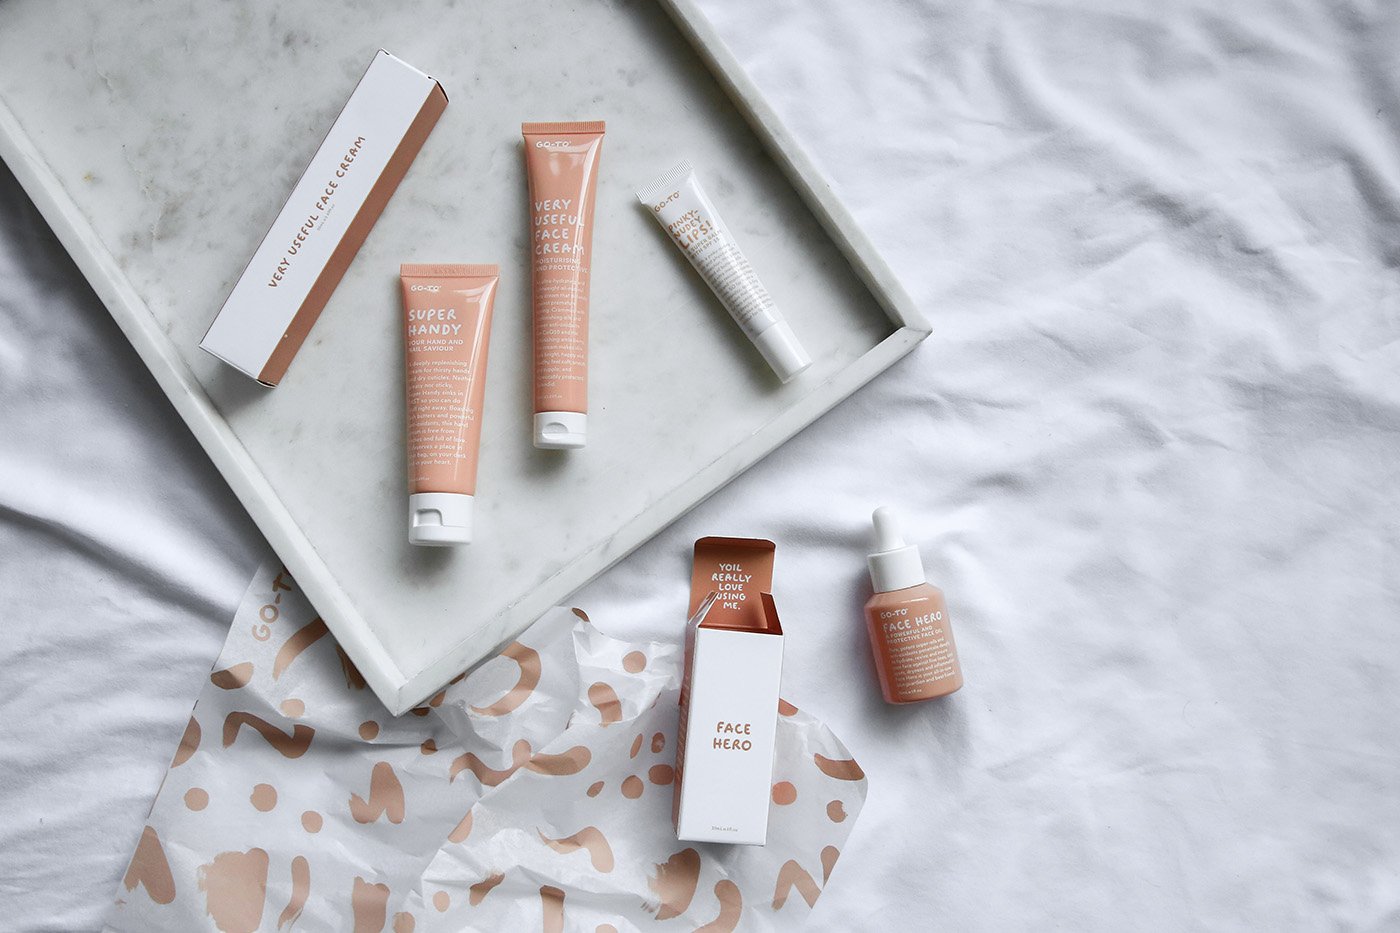 go-to skincare review zoe foster-blake